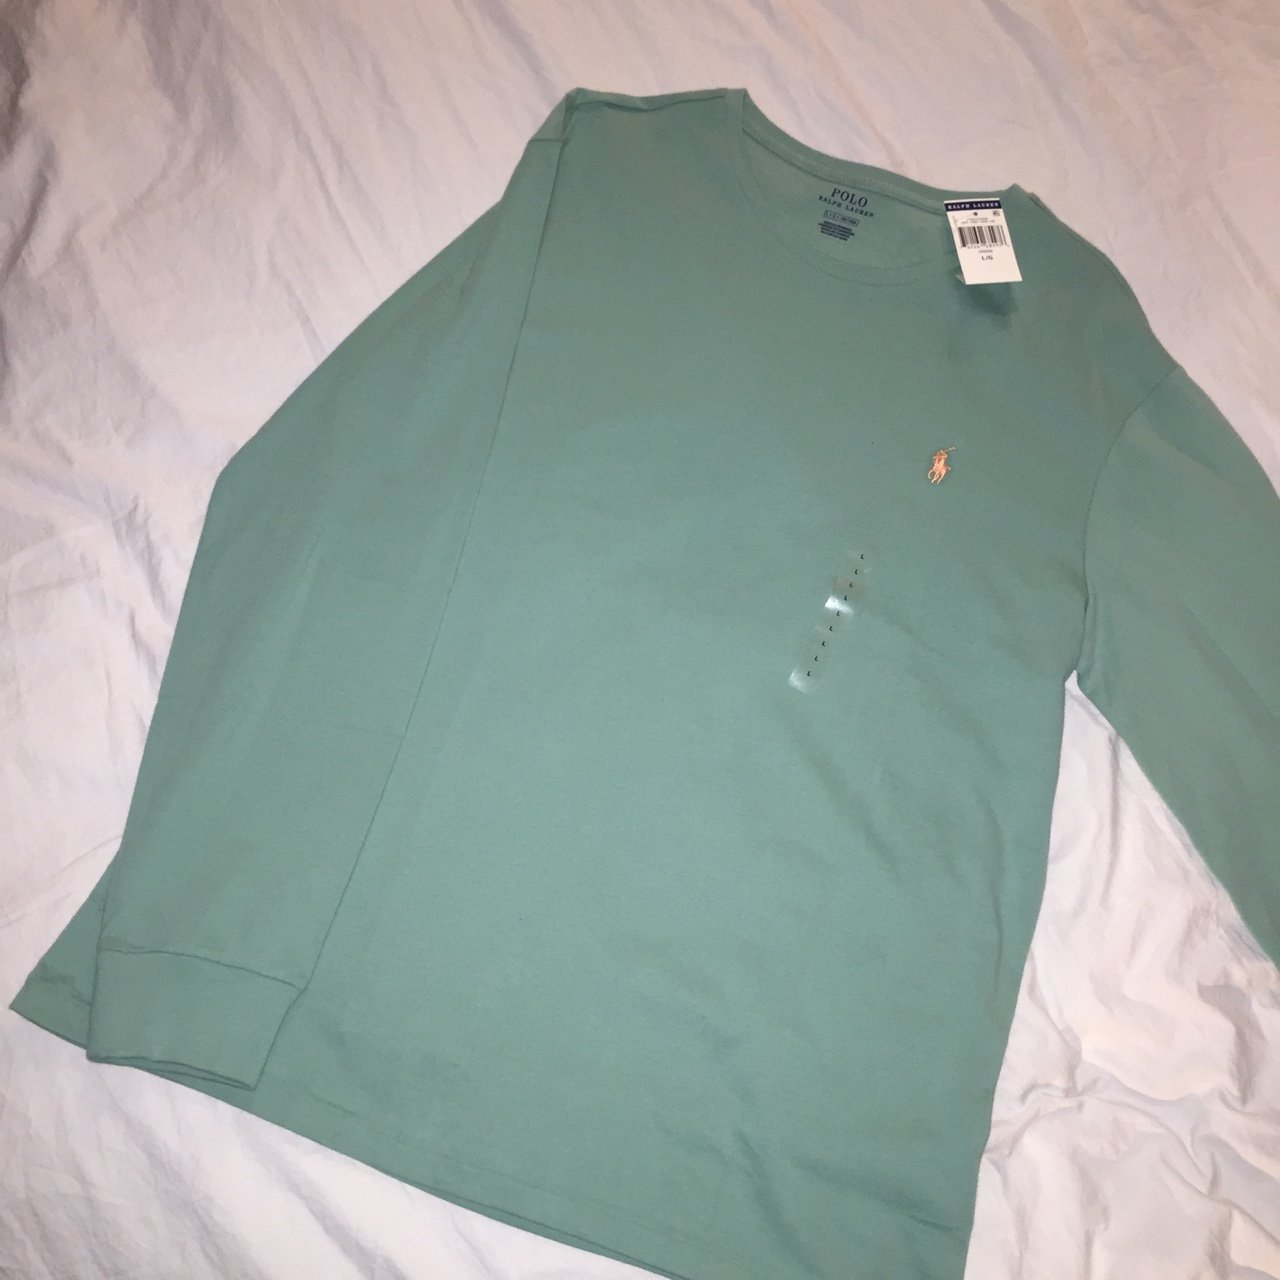 7a3532c95a60  lebronjames623. 12 days ago. United States. Polo Ralph Lauren long sleeve  shirt Brand New with tags ...